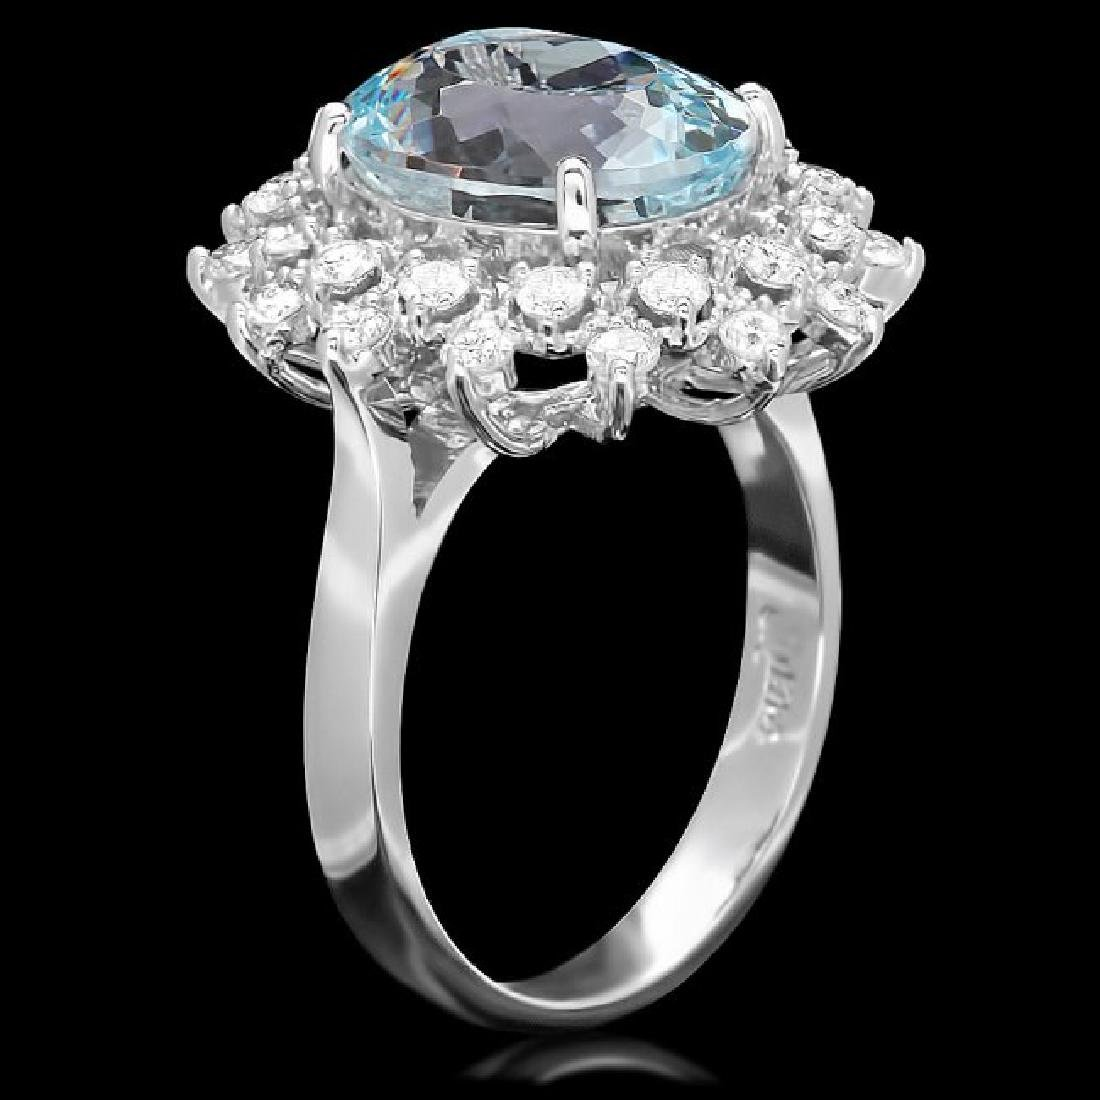 14k Gold 4.92ct Aquamarine 0.79ct Diamond Ring - 2